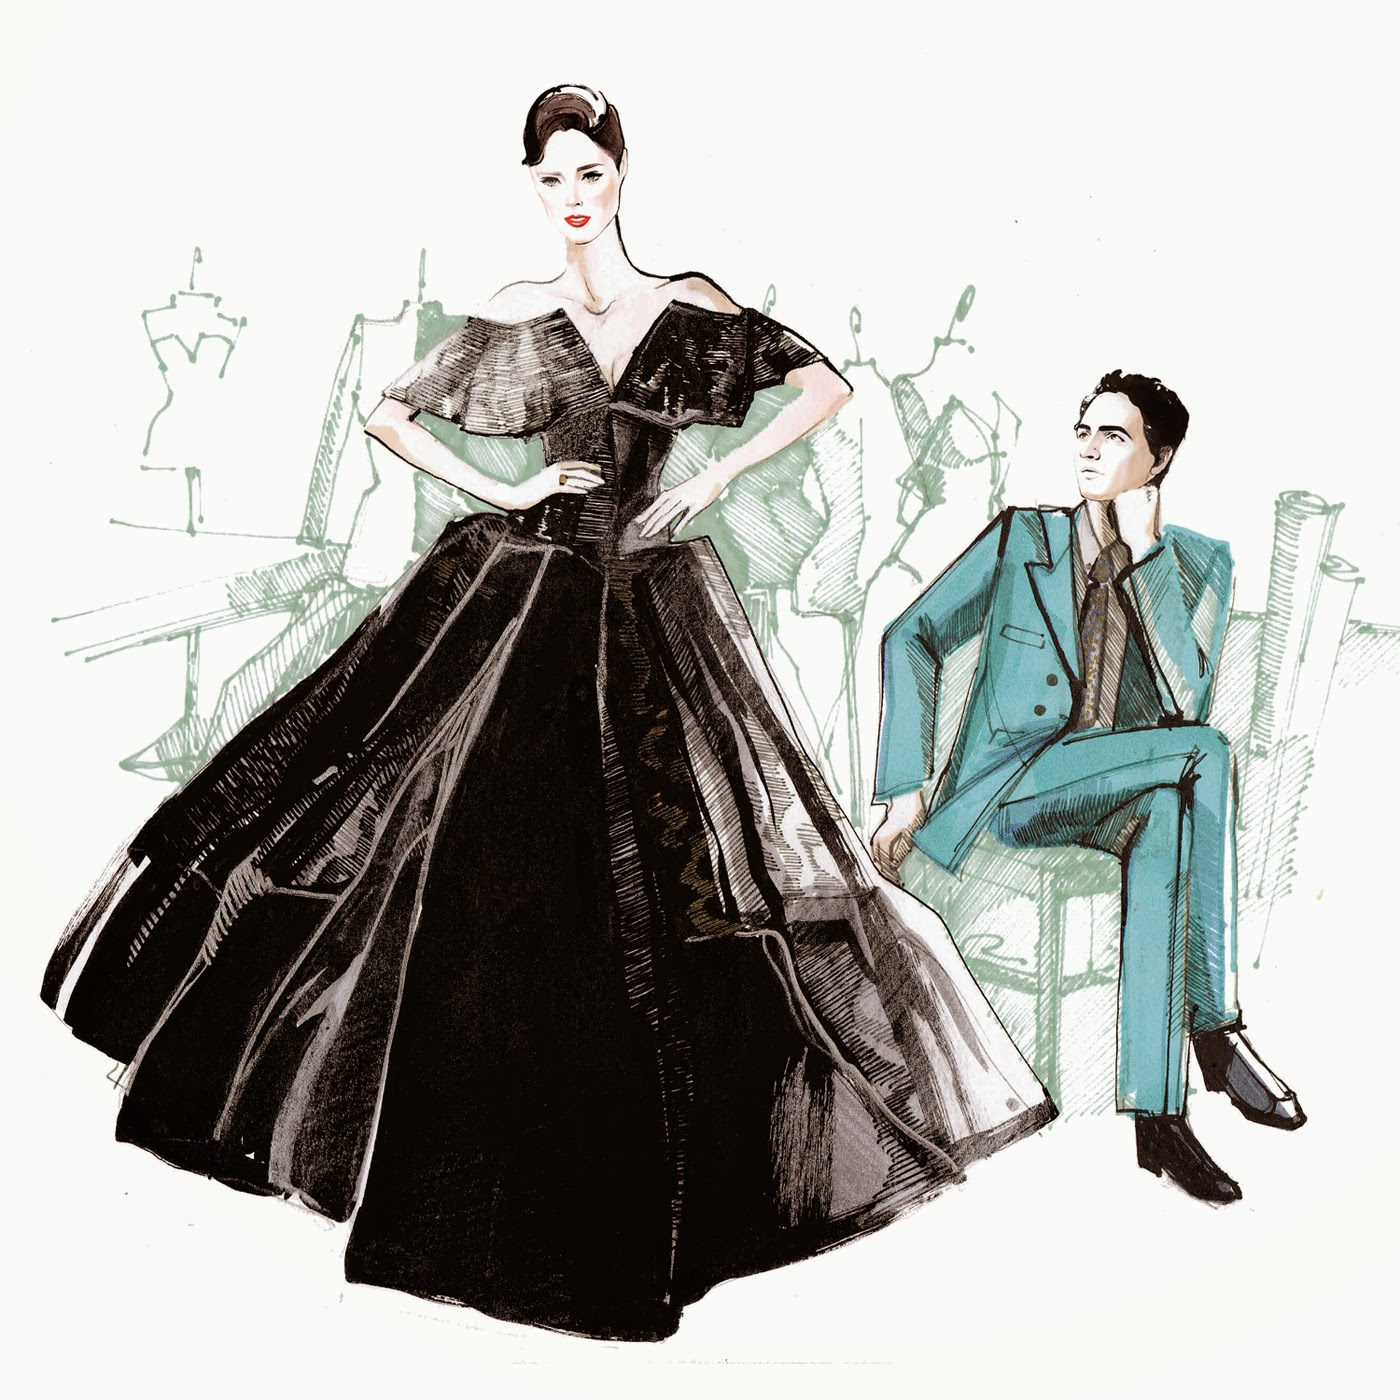 Illustration Files Zac Posen Fashion Illustration By